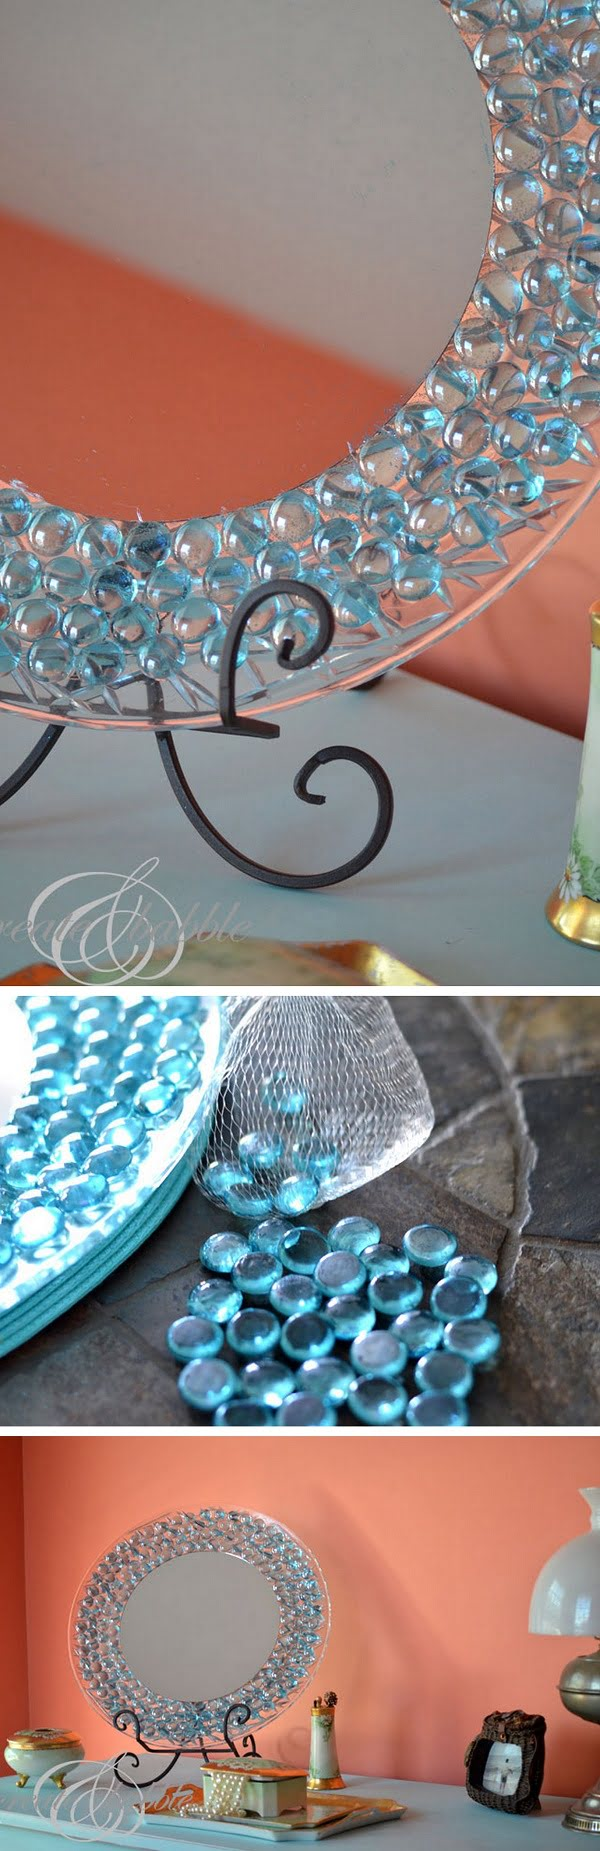 50 Fab DIY Mirror Frames You Can Easily Make Yourself - Check out how to make a DIY mirror frame with dollar store gems